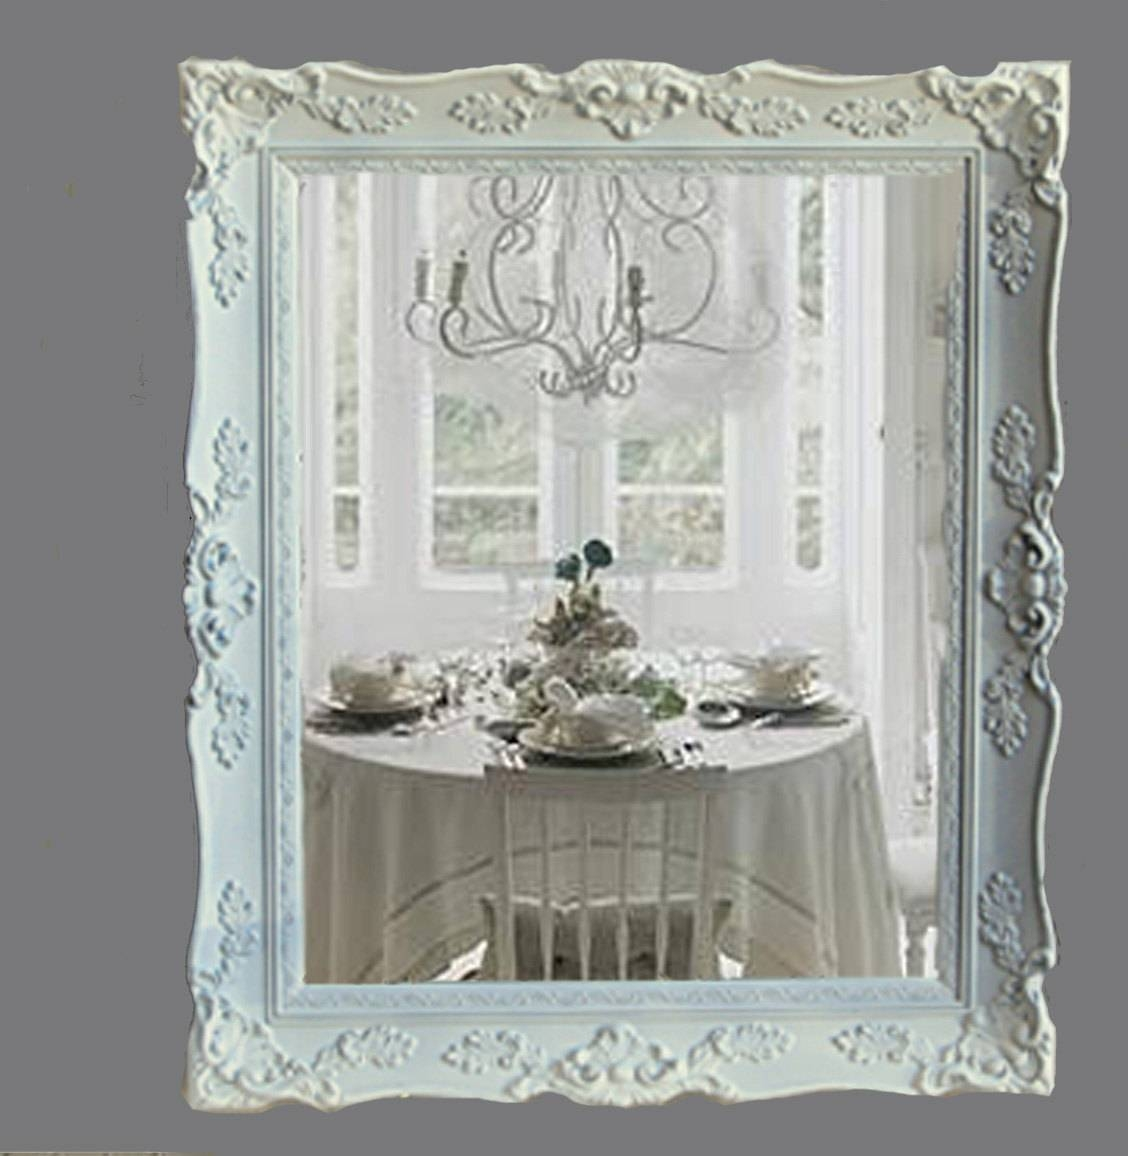 Shabby Chic Mirrors Images - Reverse Search throughout Shabby Chic Mirrors (Image 19 of 25)